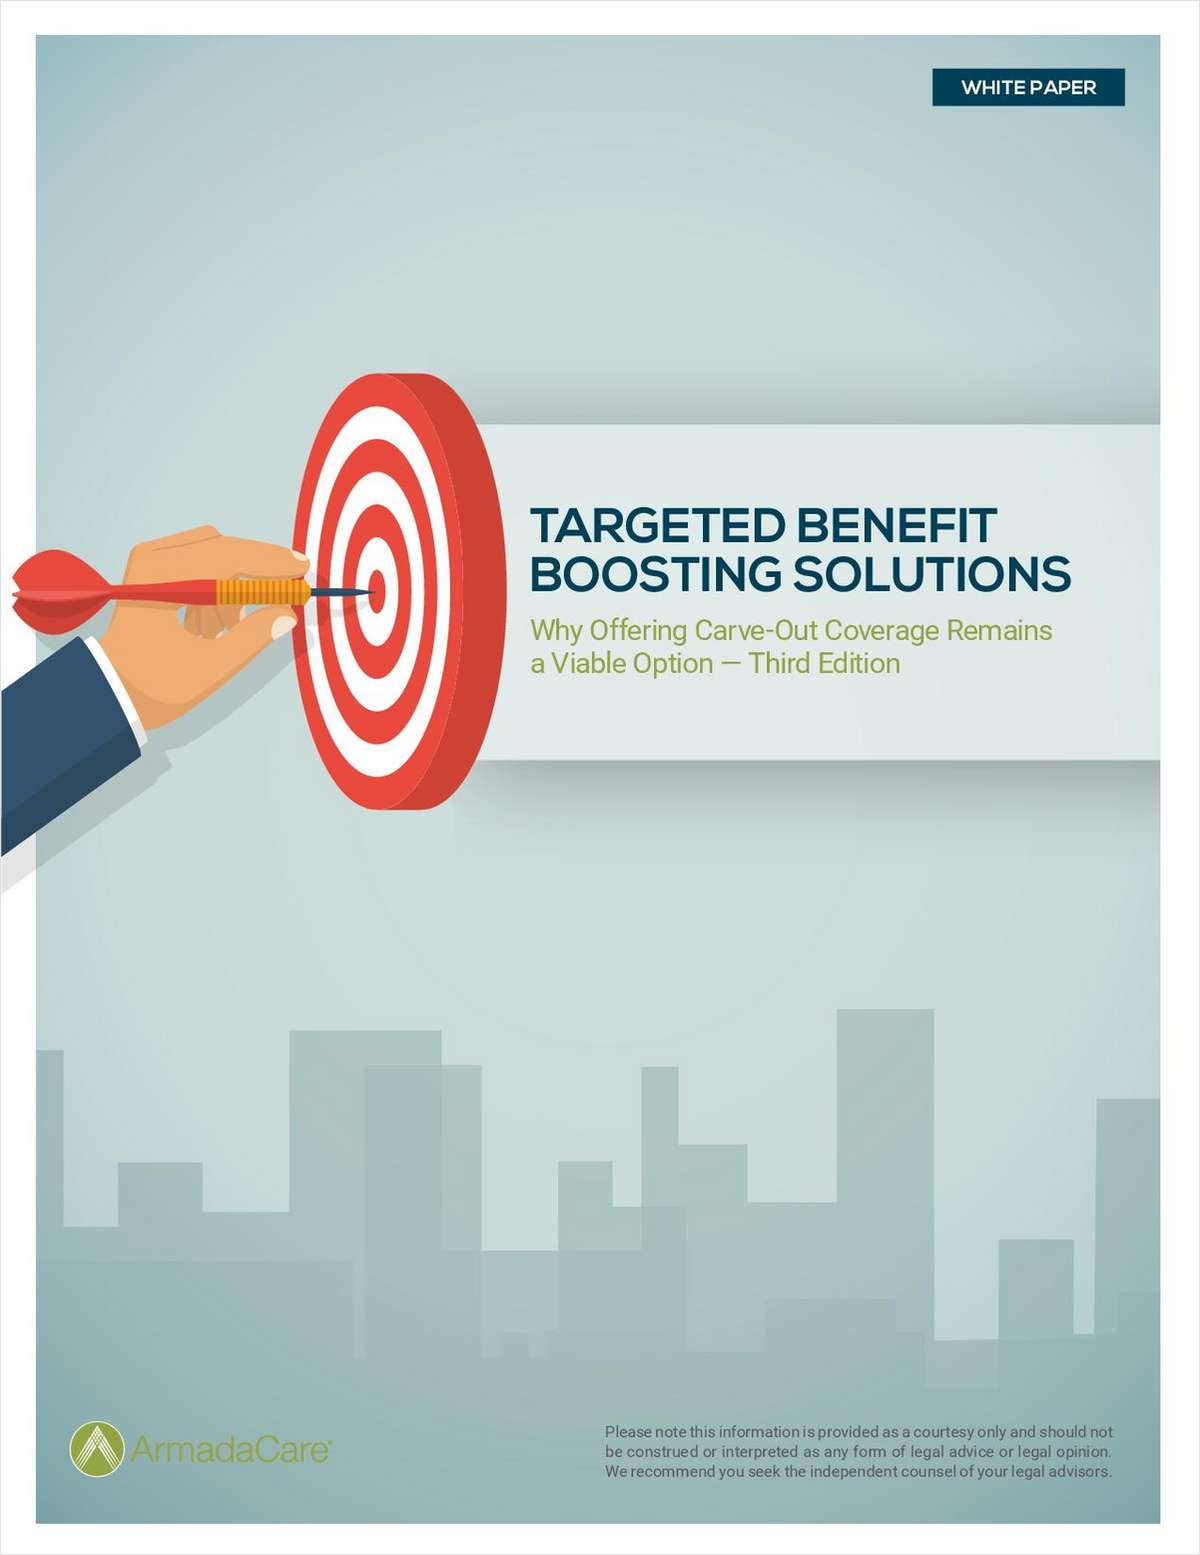 Targeted Benefit Boosting Solutions: Why Offering Carve-Out Coverage Remains a Viable Option